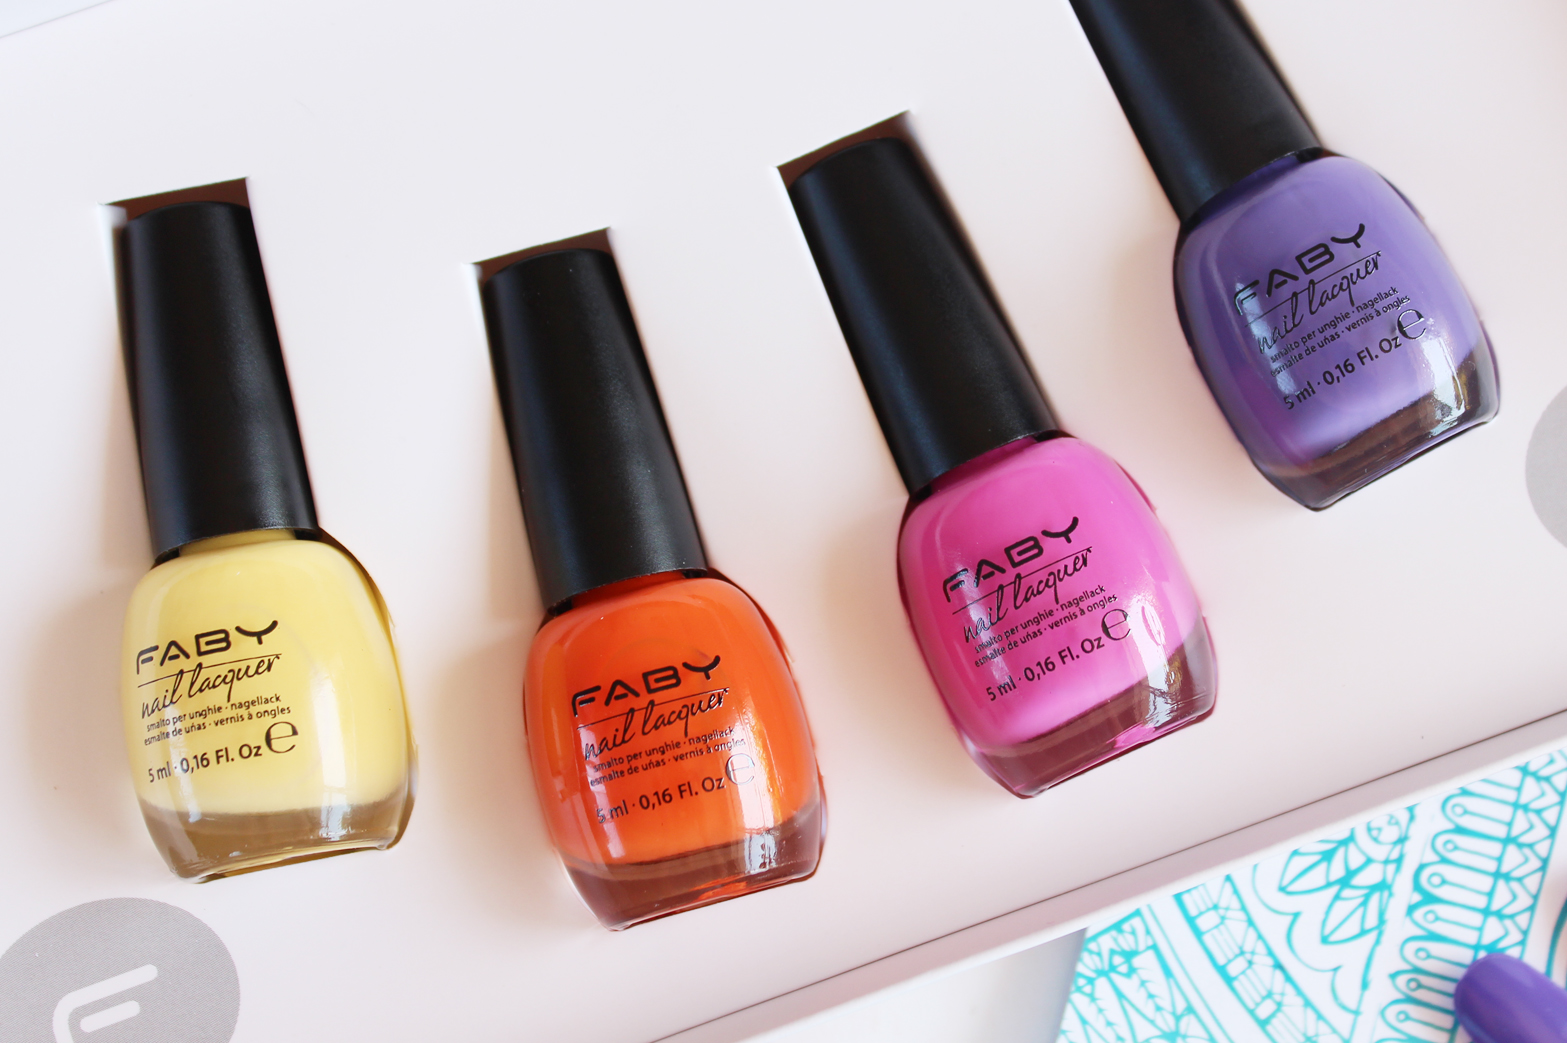 FABY | Music Spring/Summer 2015 Nail Lacquer Collection - Review + Swatches - CassandraMyee